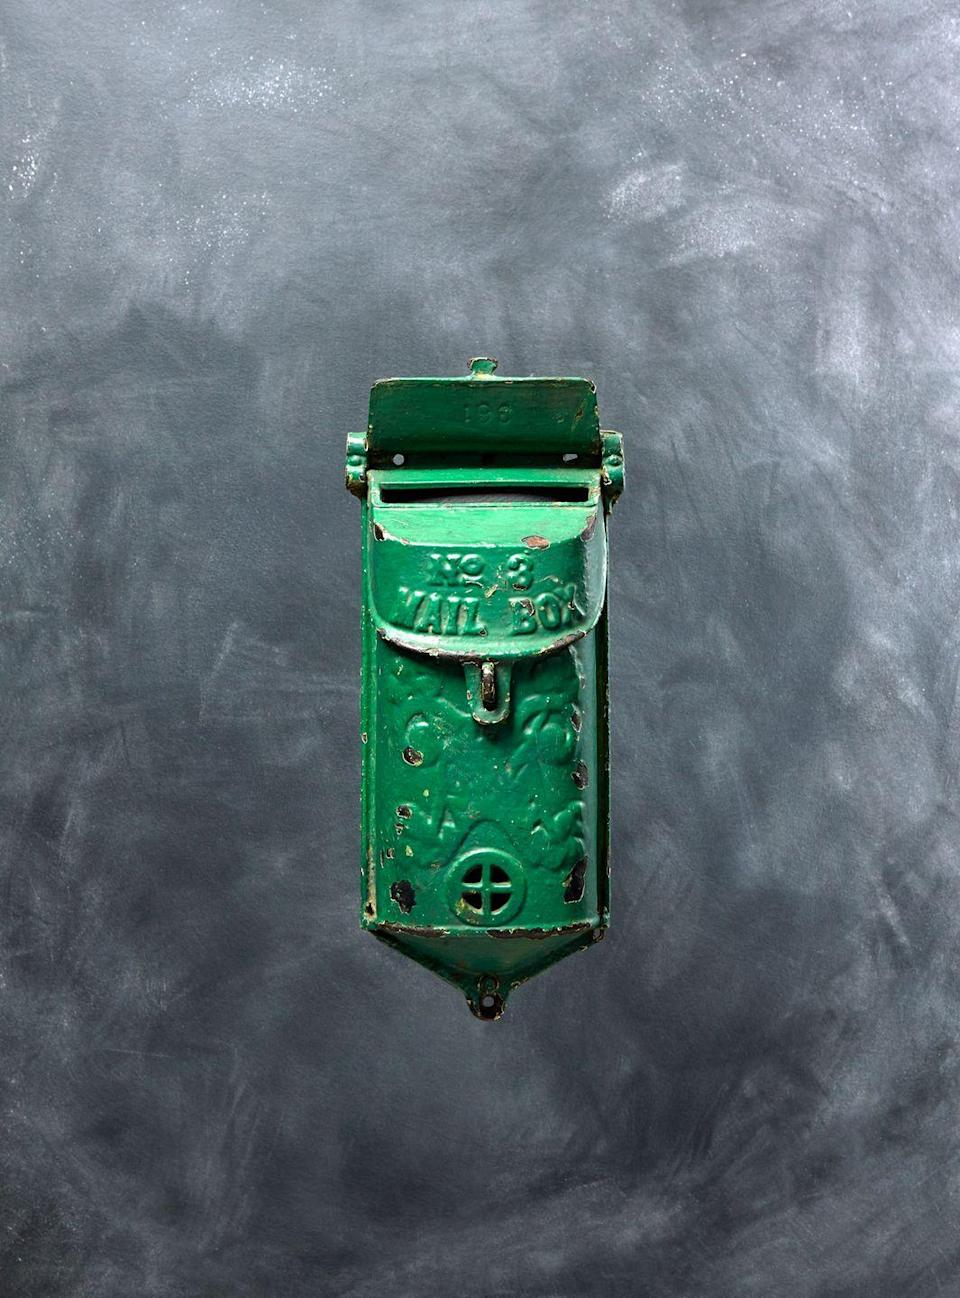 <p>Early-20th-century mailboxes carry cachet, especially if they, like this one, are produced by Griswold, one of the most sought-after makers of cast iron. In operation from 1865 until 1957, the company specialized in cookware, but ardent cast-iron collectors are interested in all forms. This No. 3 mailbox from 1910 is no exception. Unpainted examples are valued at $350; because this one bears an unoriginal, though eye-catching, green paint job, its value is considerably less, says Marsha Dixey of Heritage Auctions. </p><p><strong>What it's worth:</strong> up to $350</p>